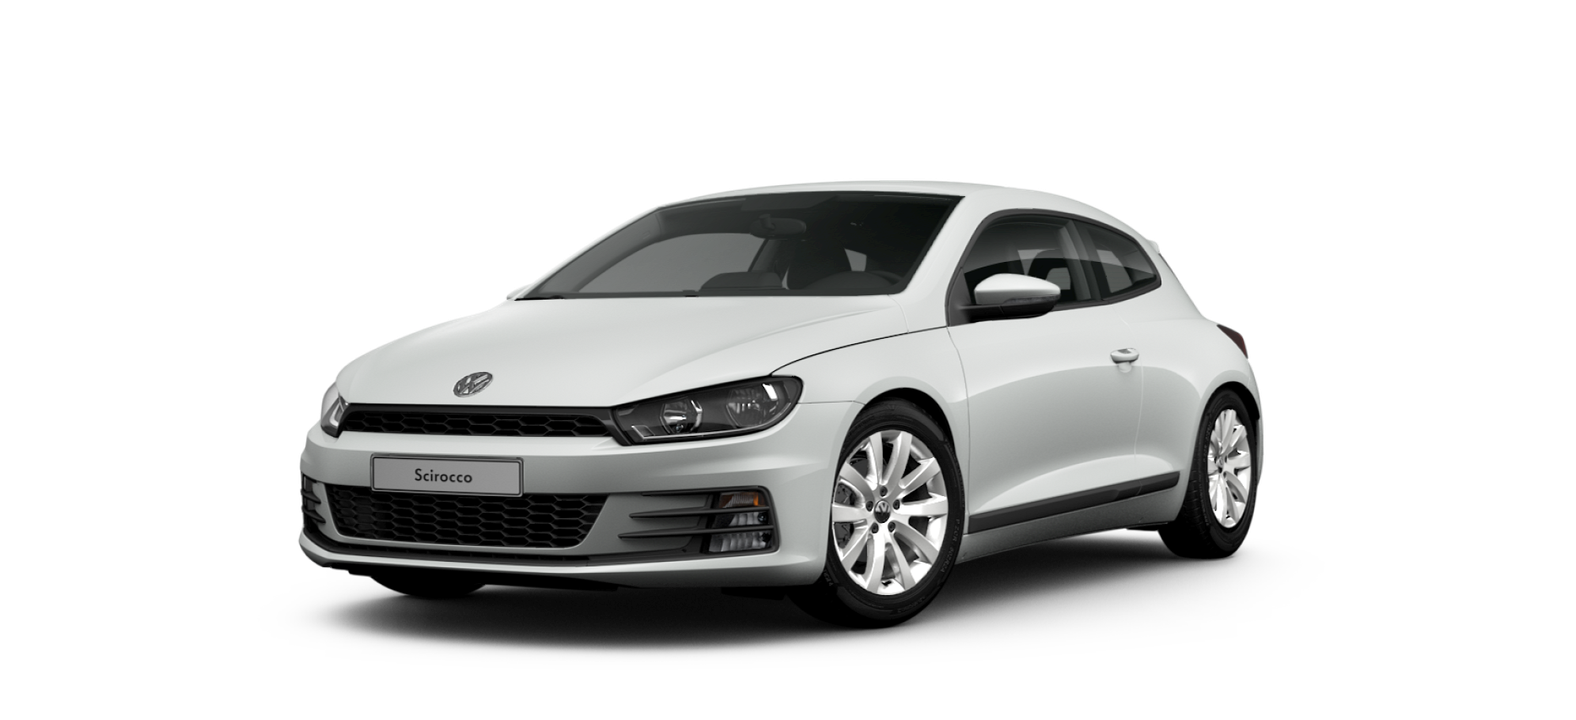 vw-scirocco-frontansicht